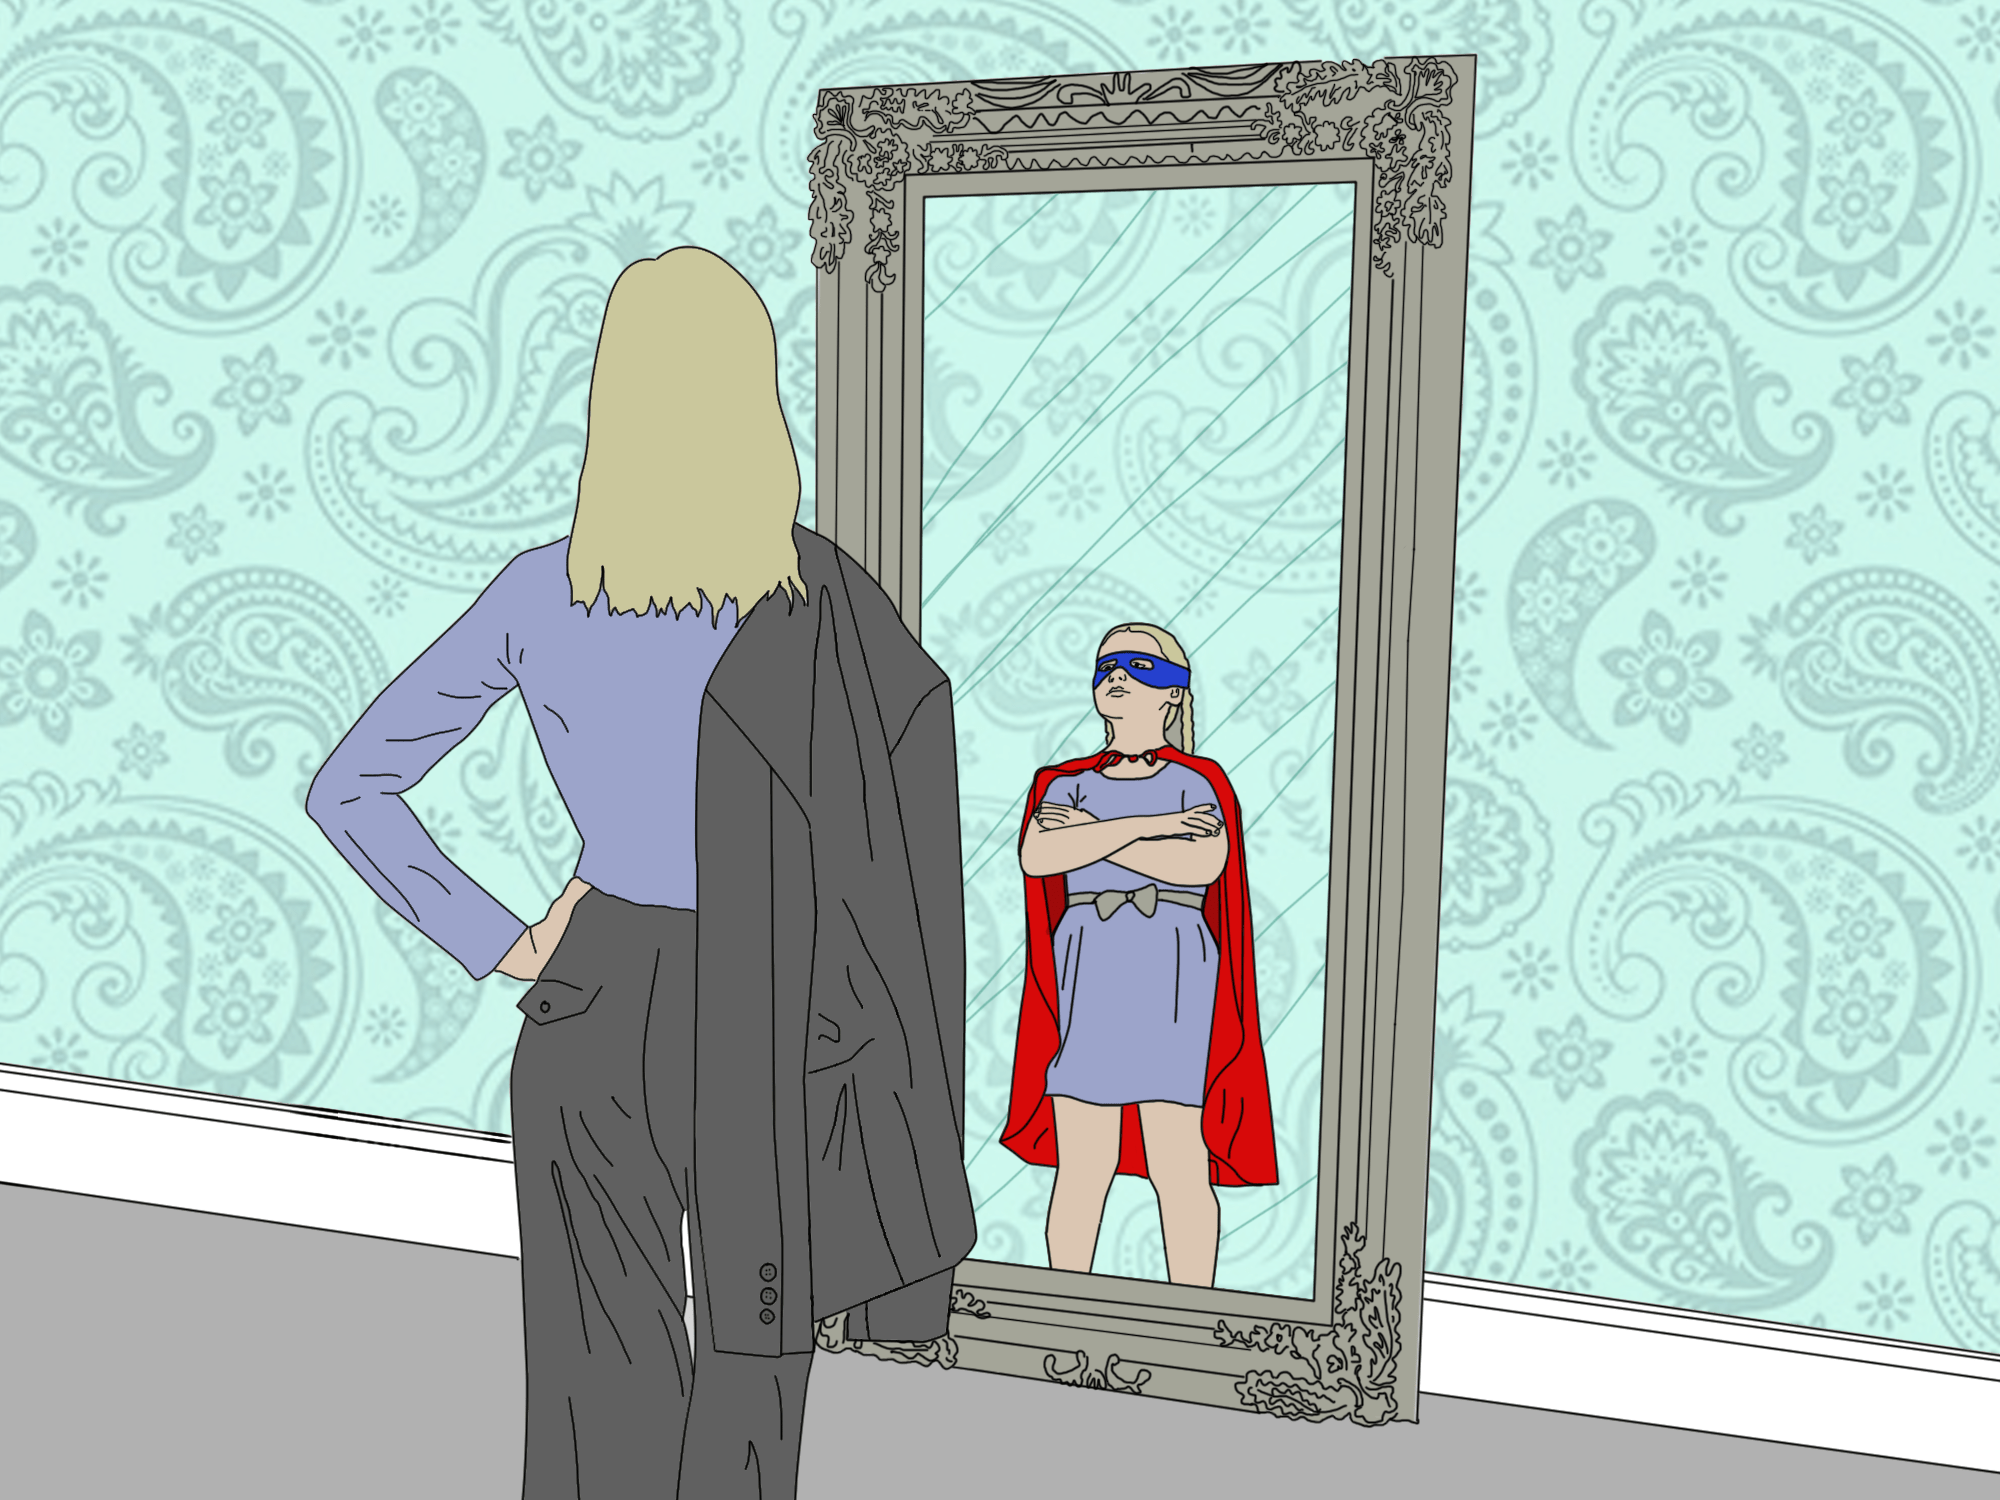 45% of women say that they feel more body confident than ever